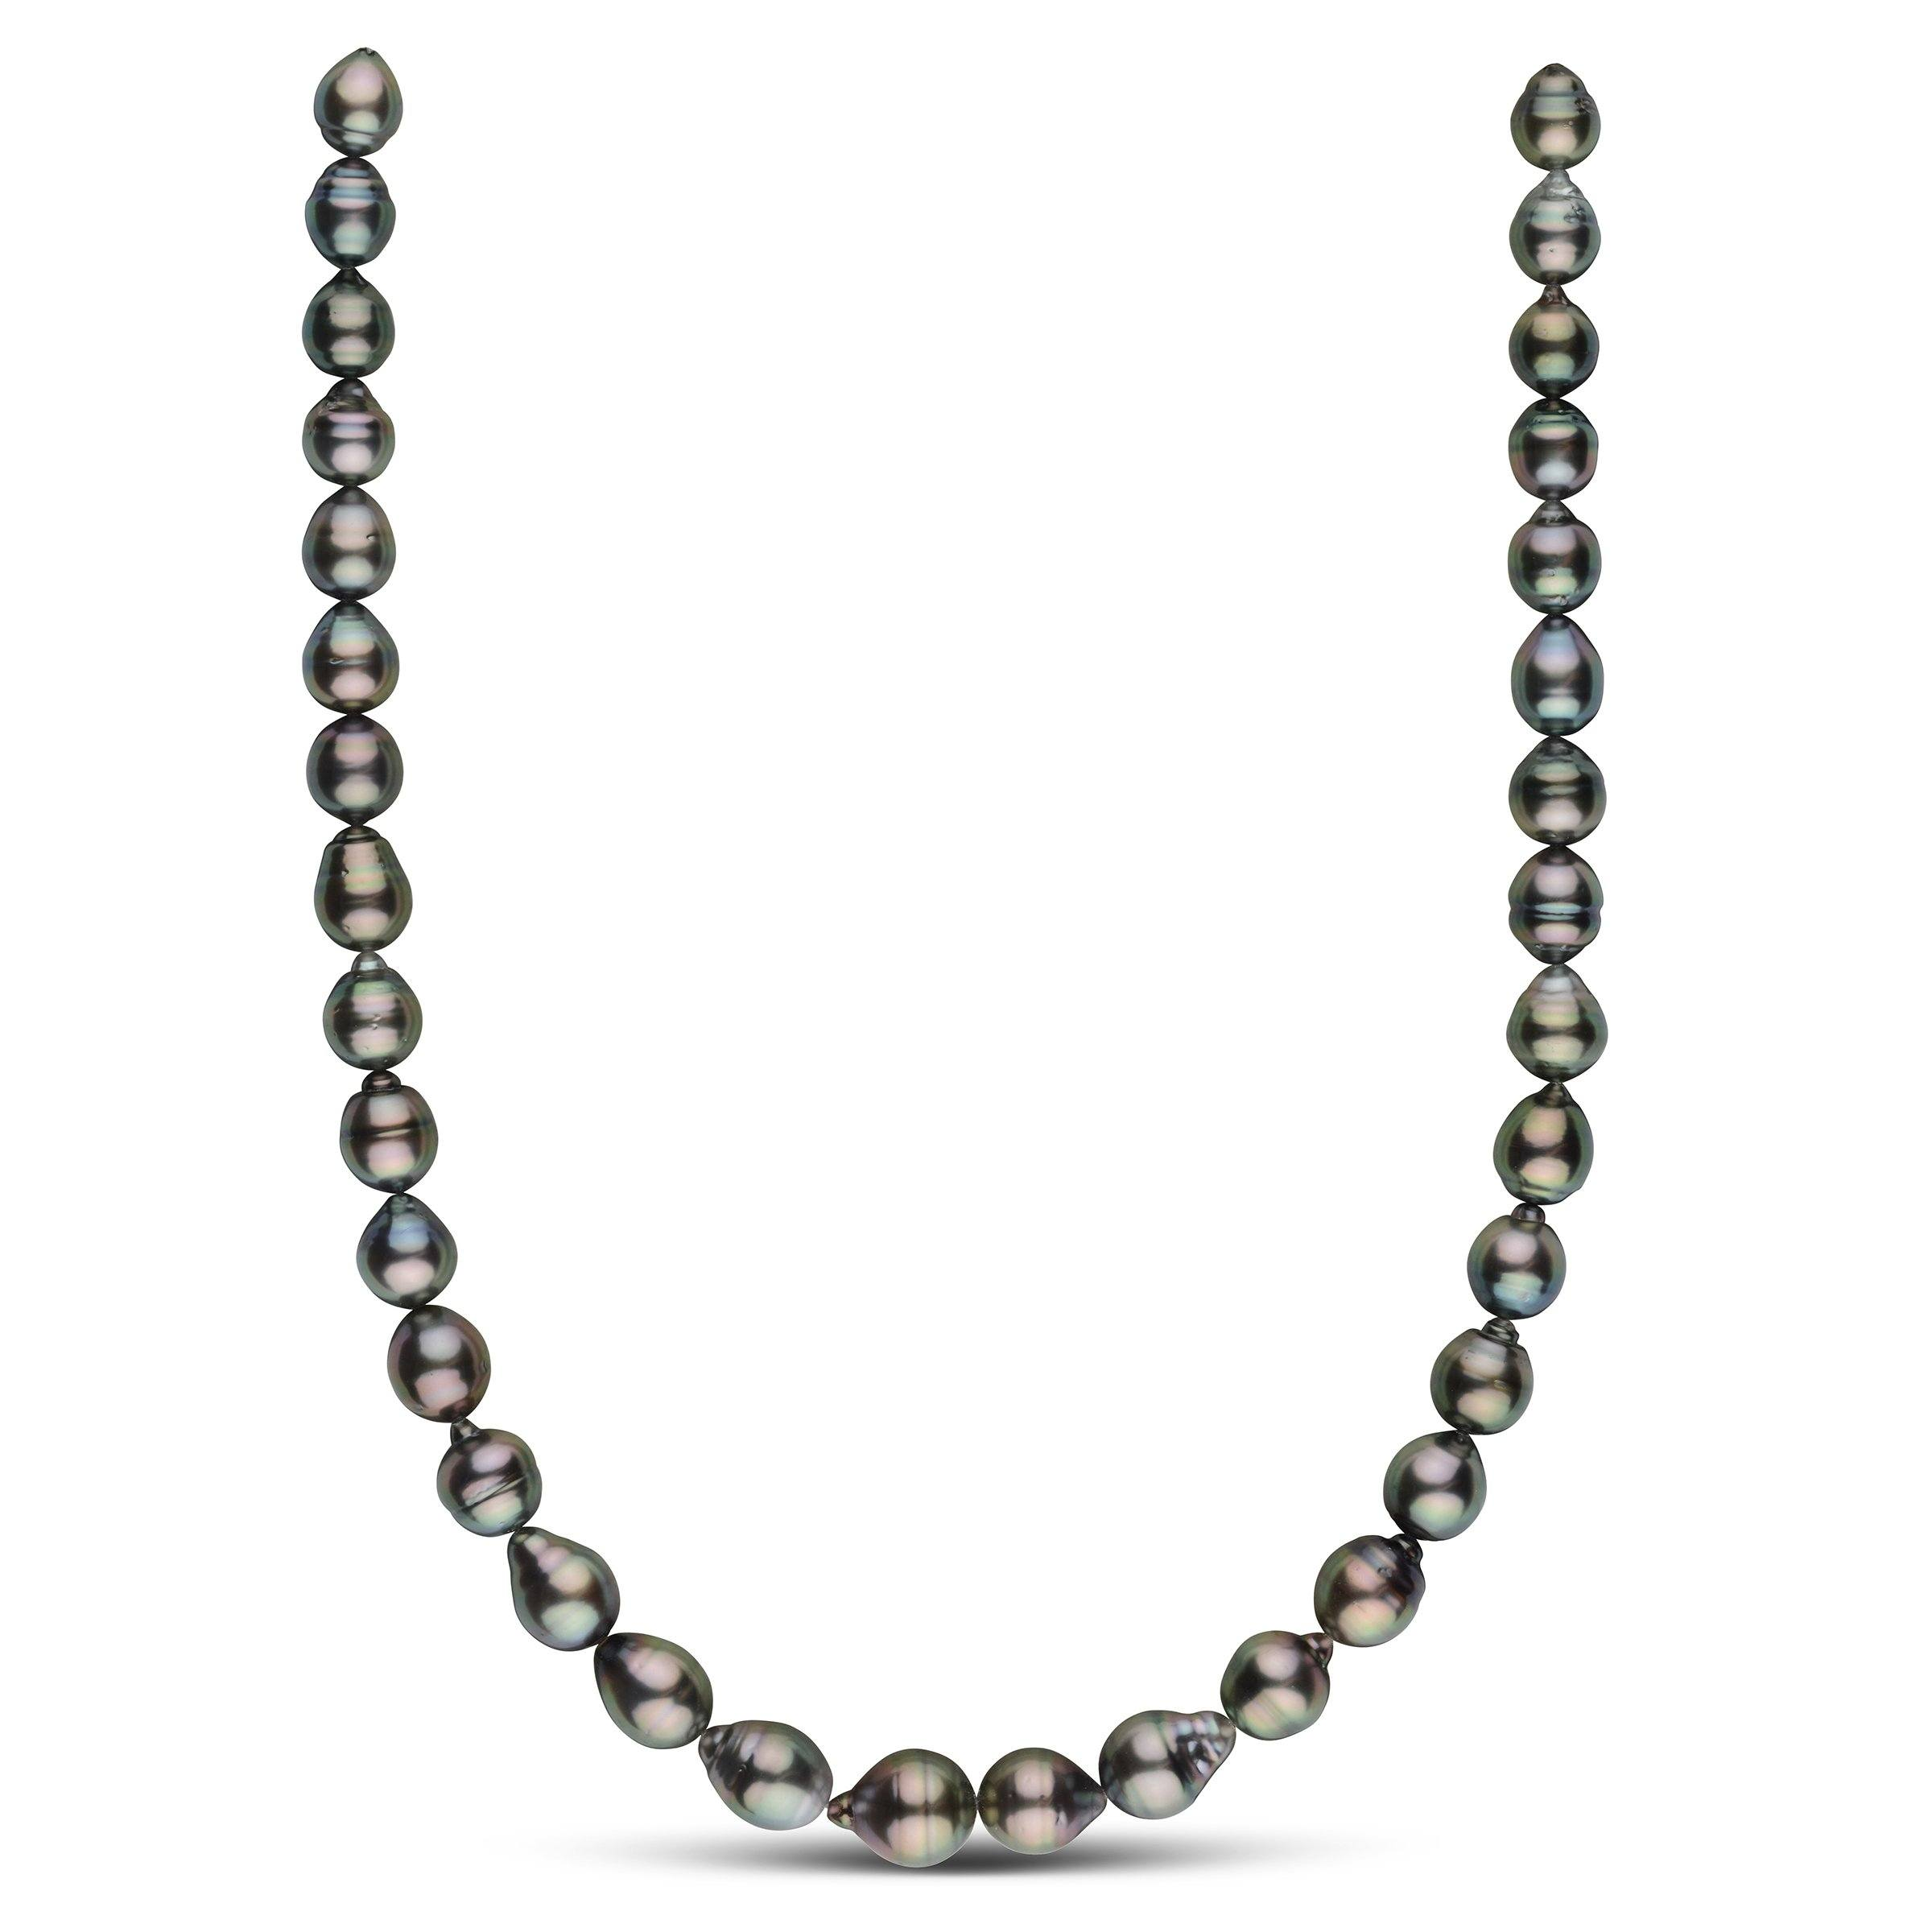 9.0-11.9 mm AA+/AAA Tahitian Baroque Pearl Necklace